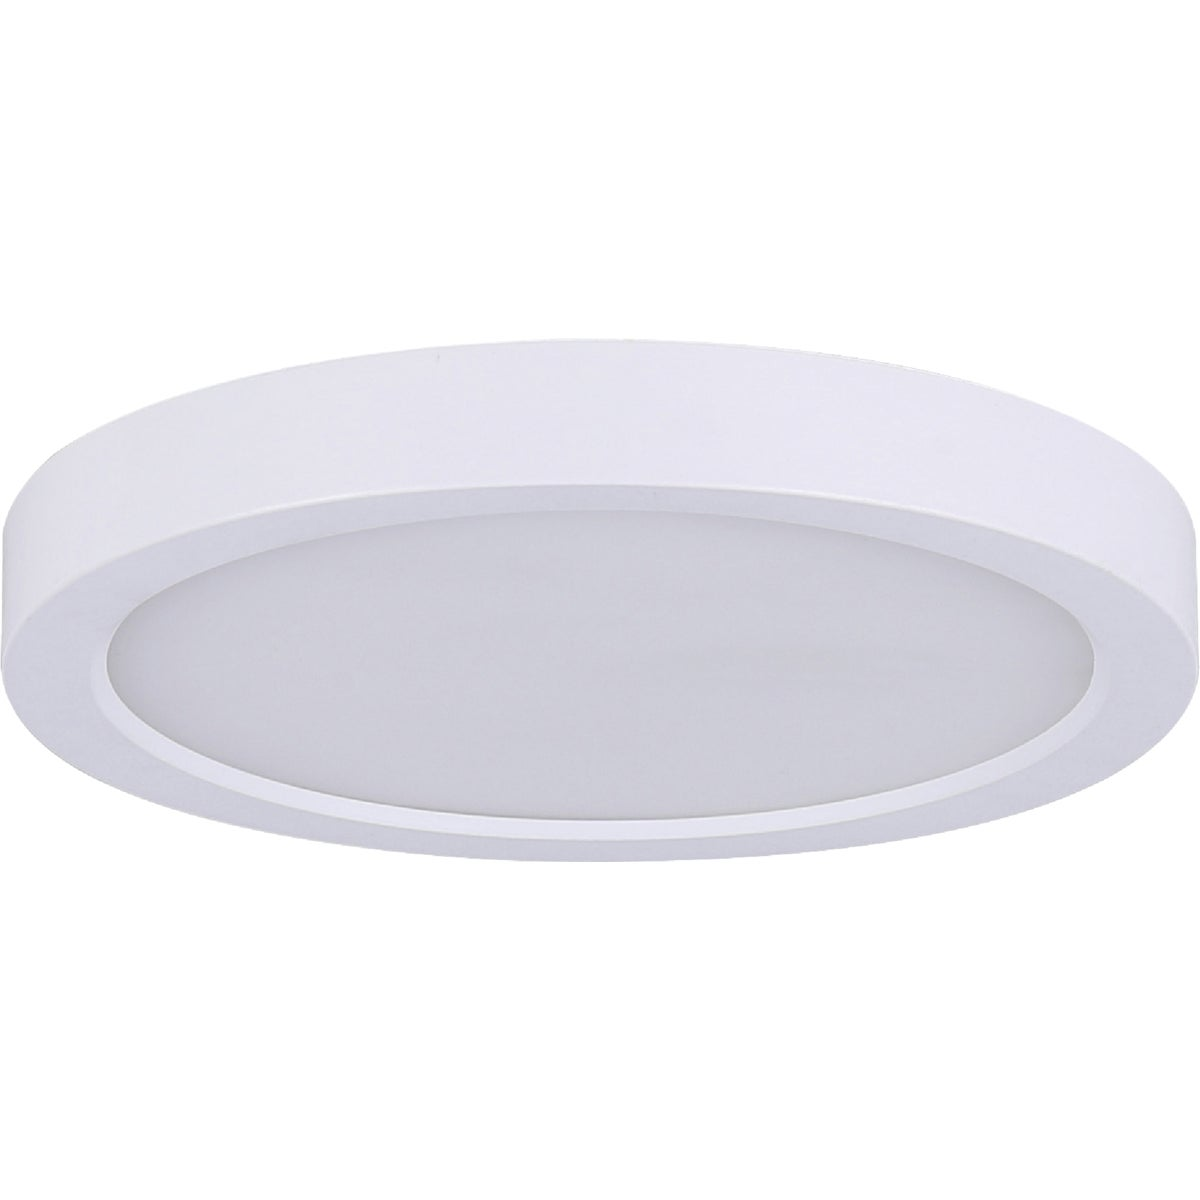 Canarm 11 In. LED Flush Mount Ceiling Light Fixture